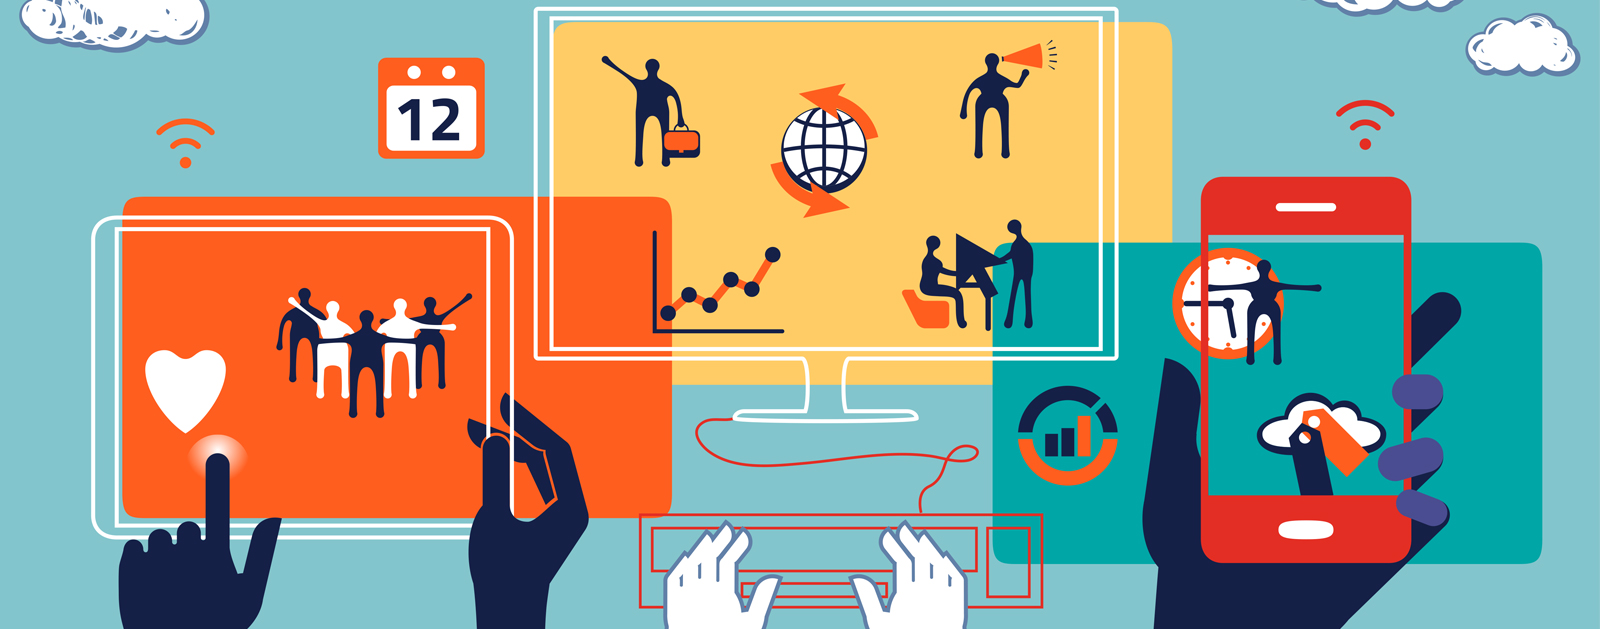 Employees Lack The Digital Skills Needed To Meet The Demands Of Organisations